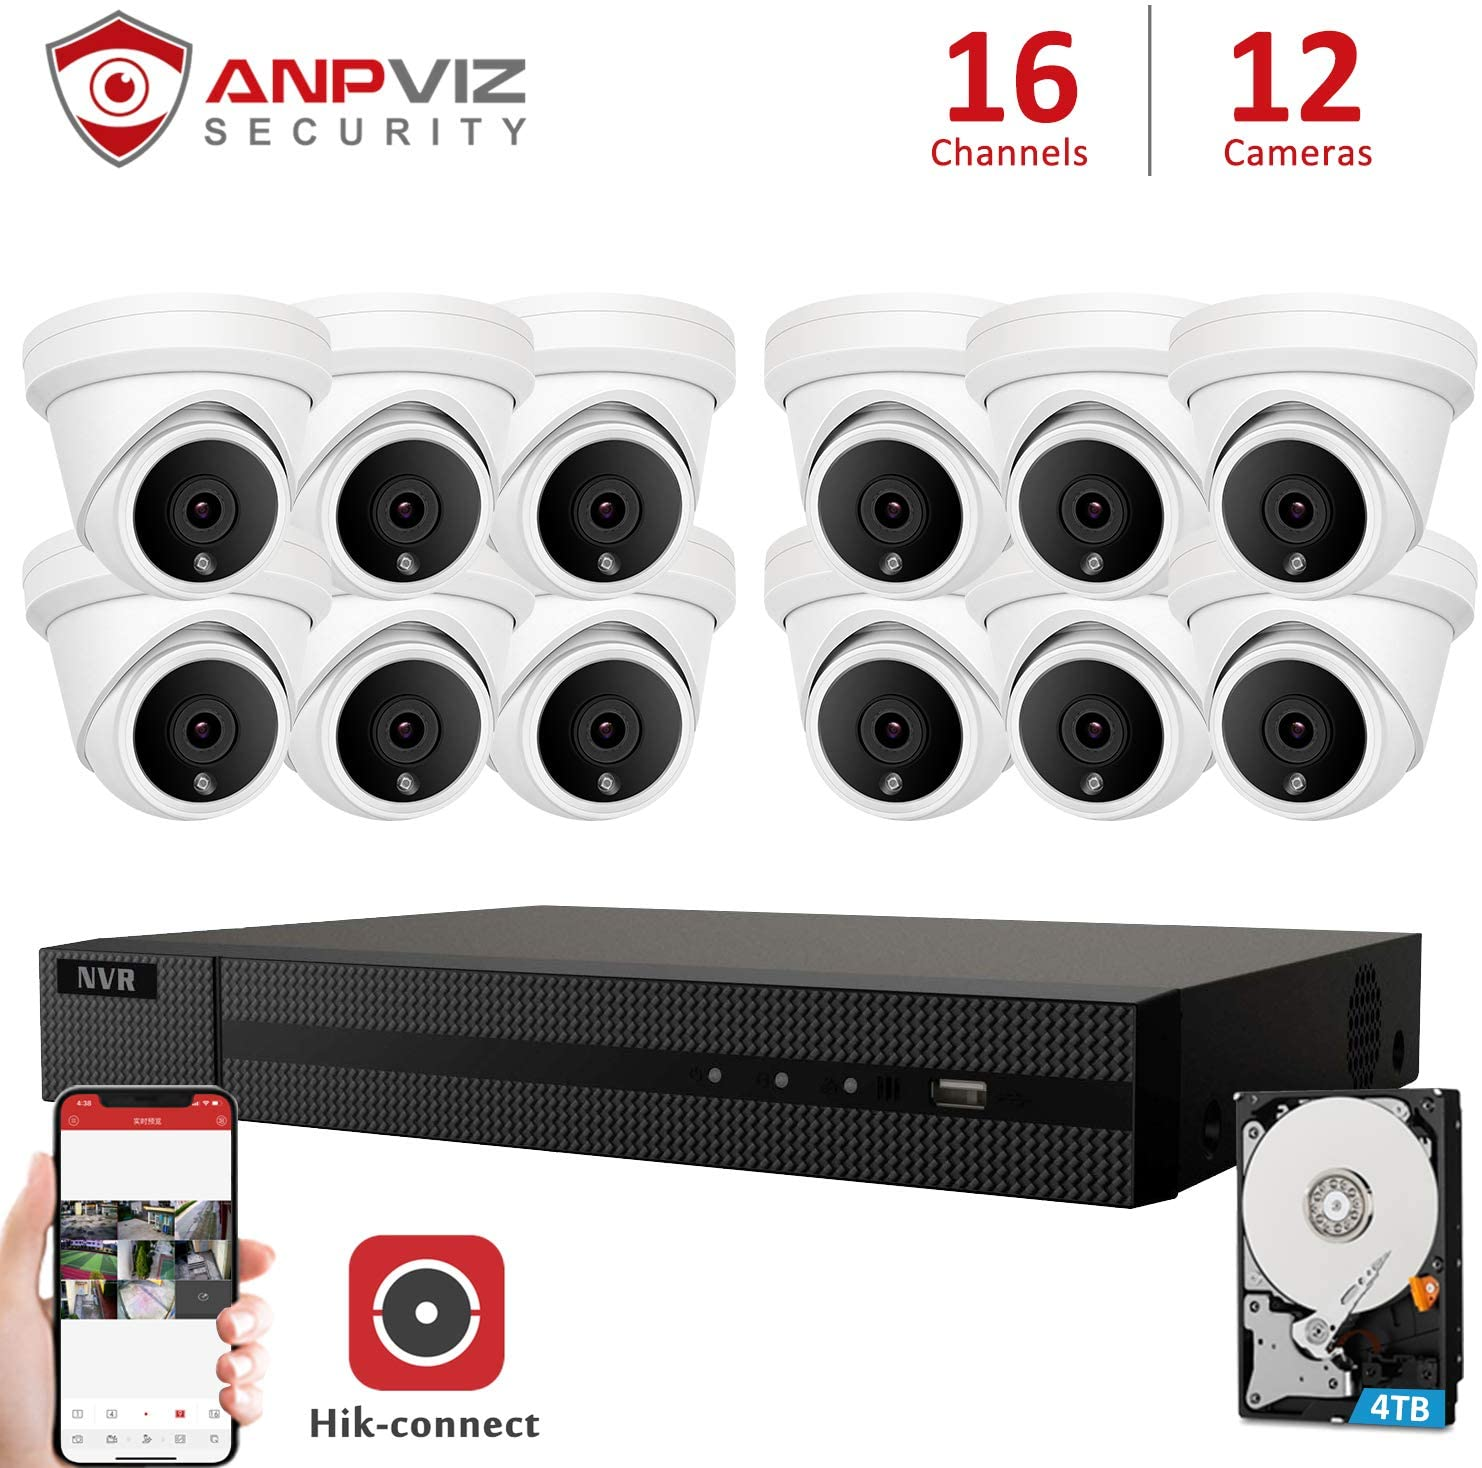 Anpviz 16 Channel 5MP Camera Security NVR System, 16CH 4K H.265 NVR with 4TB HDD with 12pcs 5MP Turret Outdoor IP POE Cameras Home Security System with Audio, Weatherproof, 98ft Night Vision